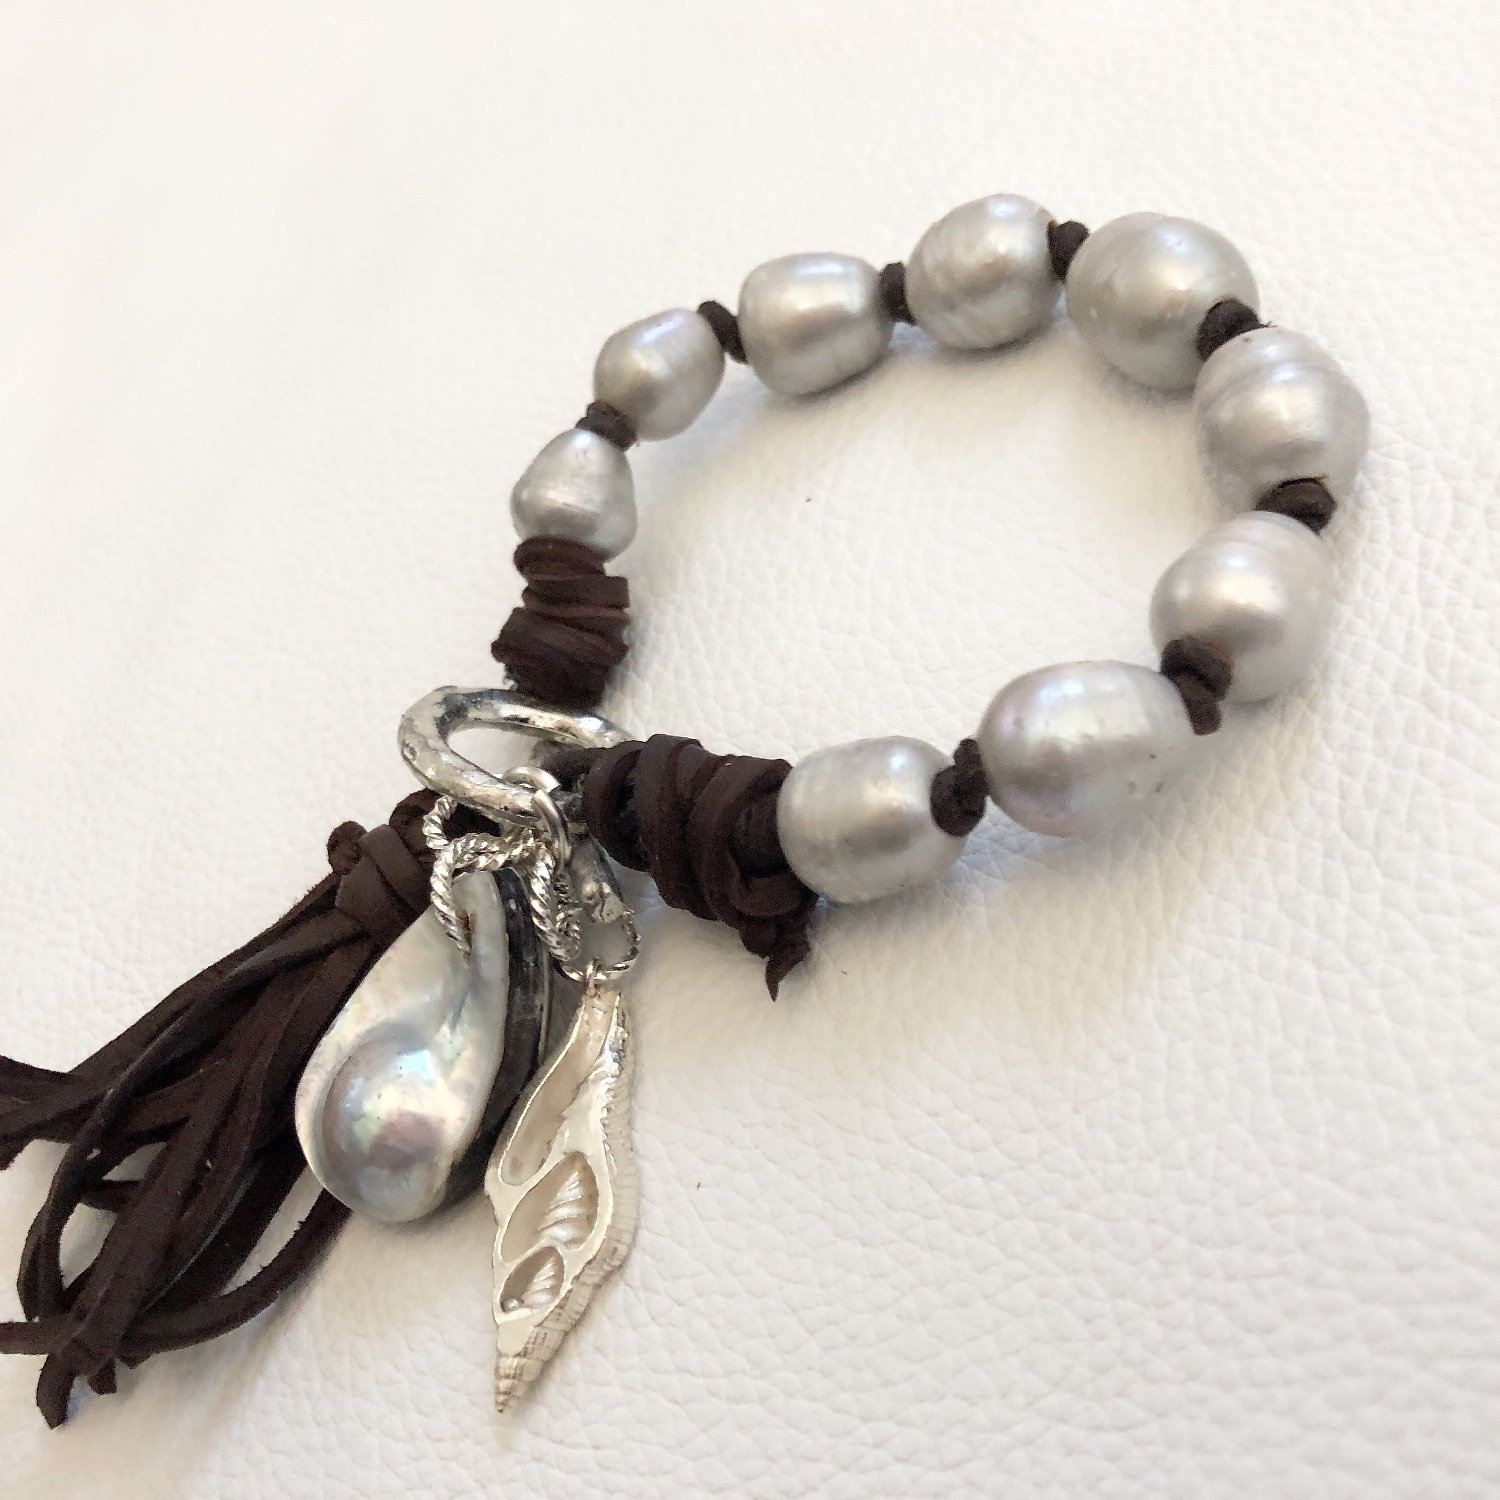 freshwater pearl bracelet charm bracelet with stunning mabe pearl sterling silver shell and deerskin tassel